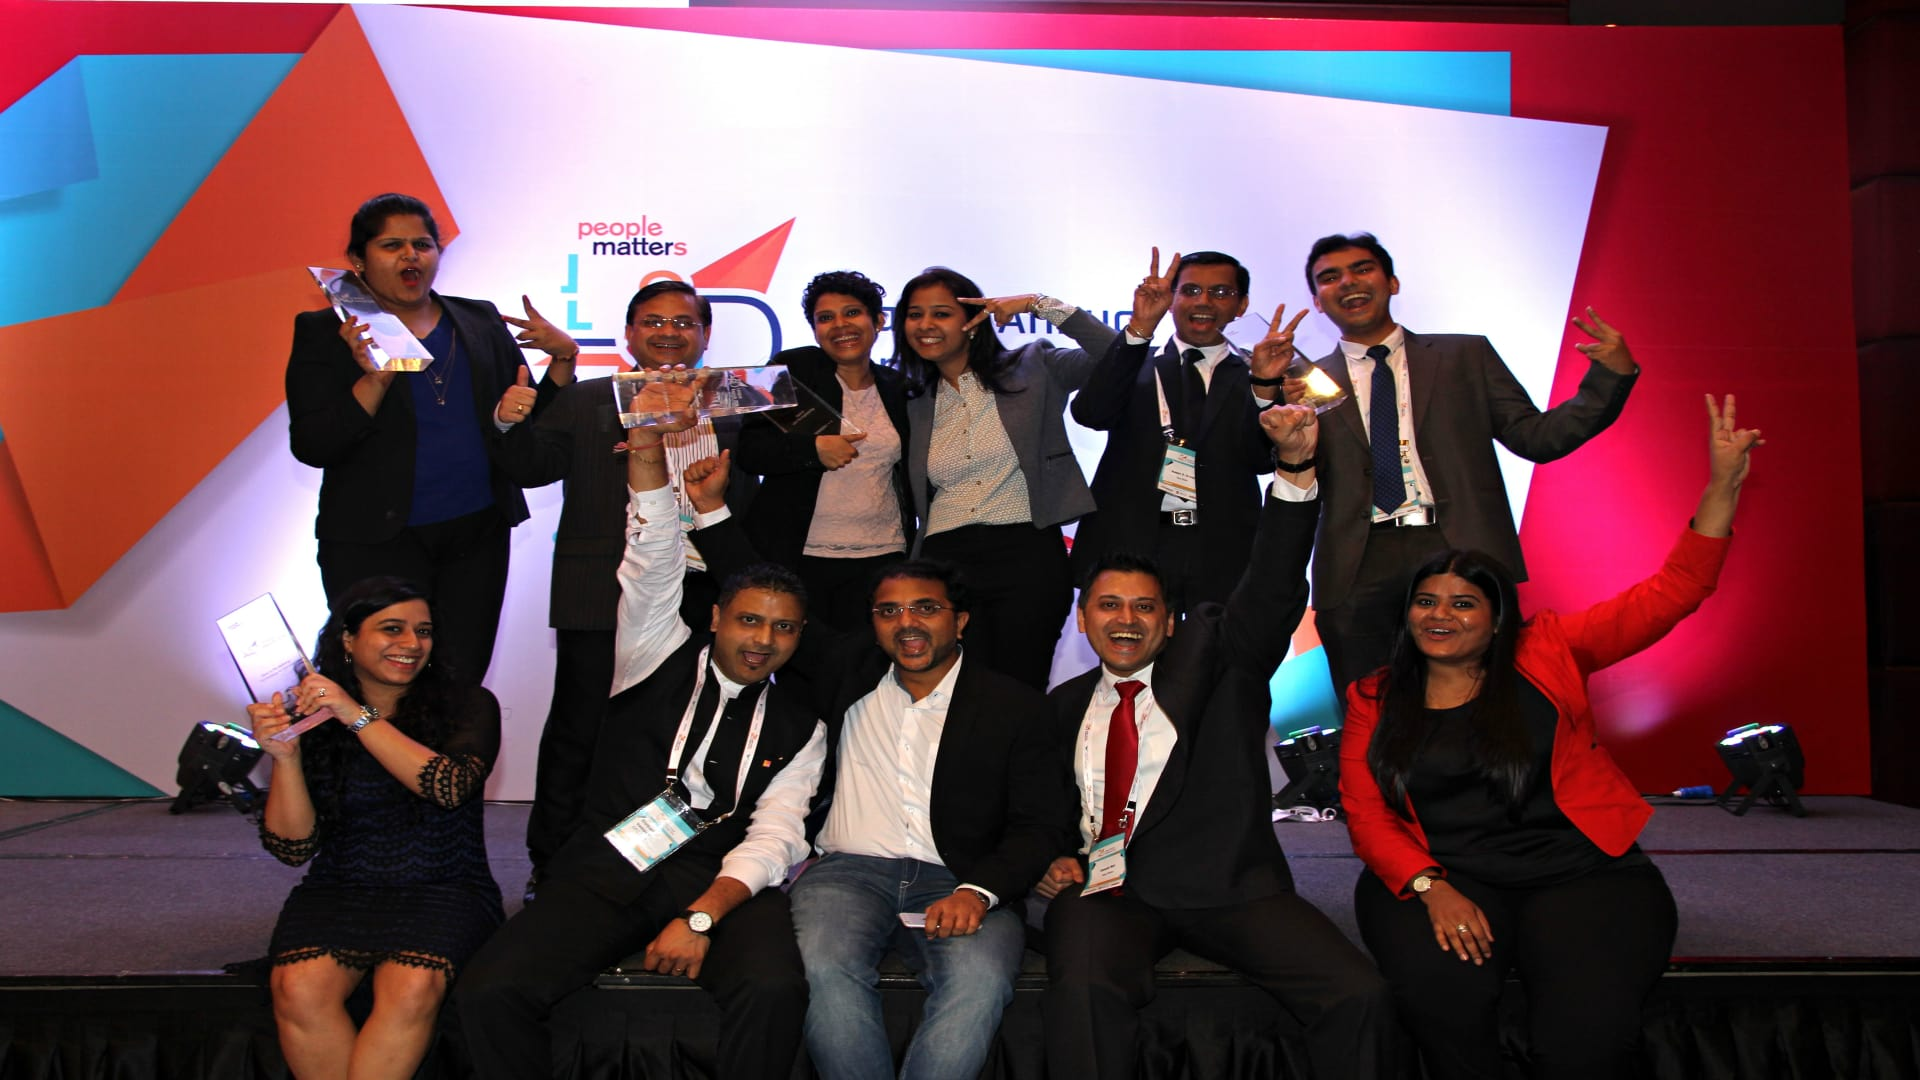 Winners of L&D League Annual Awards 2016